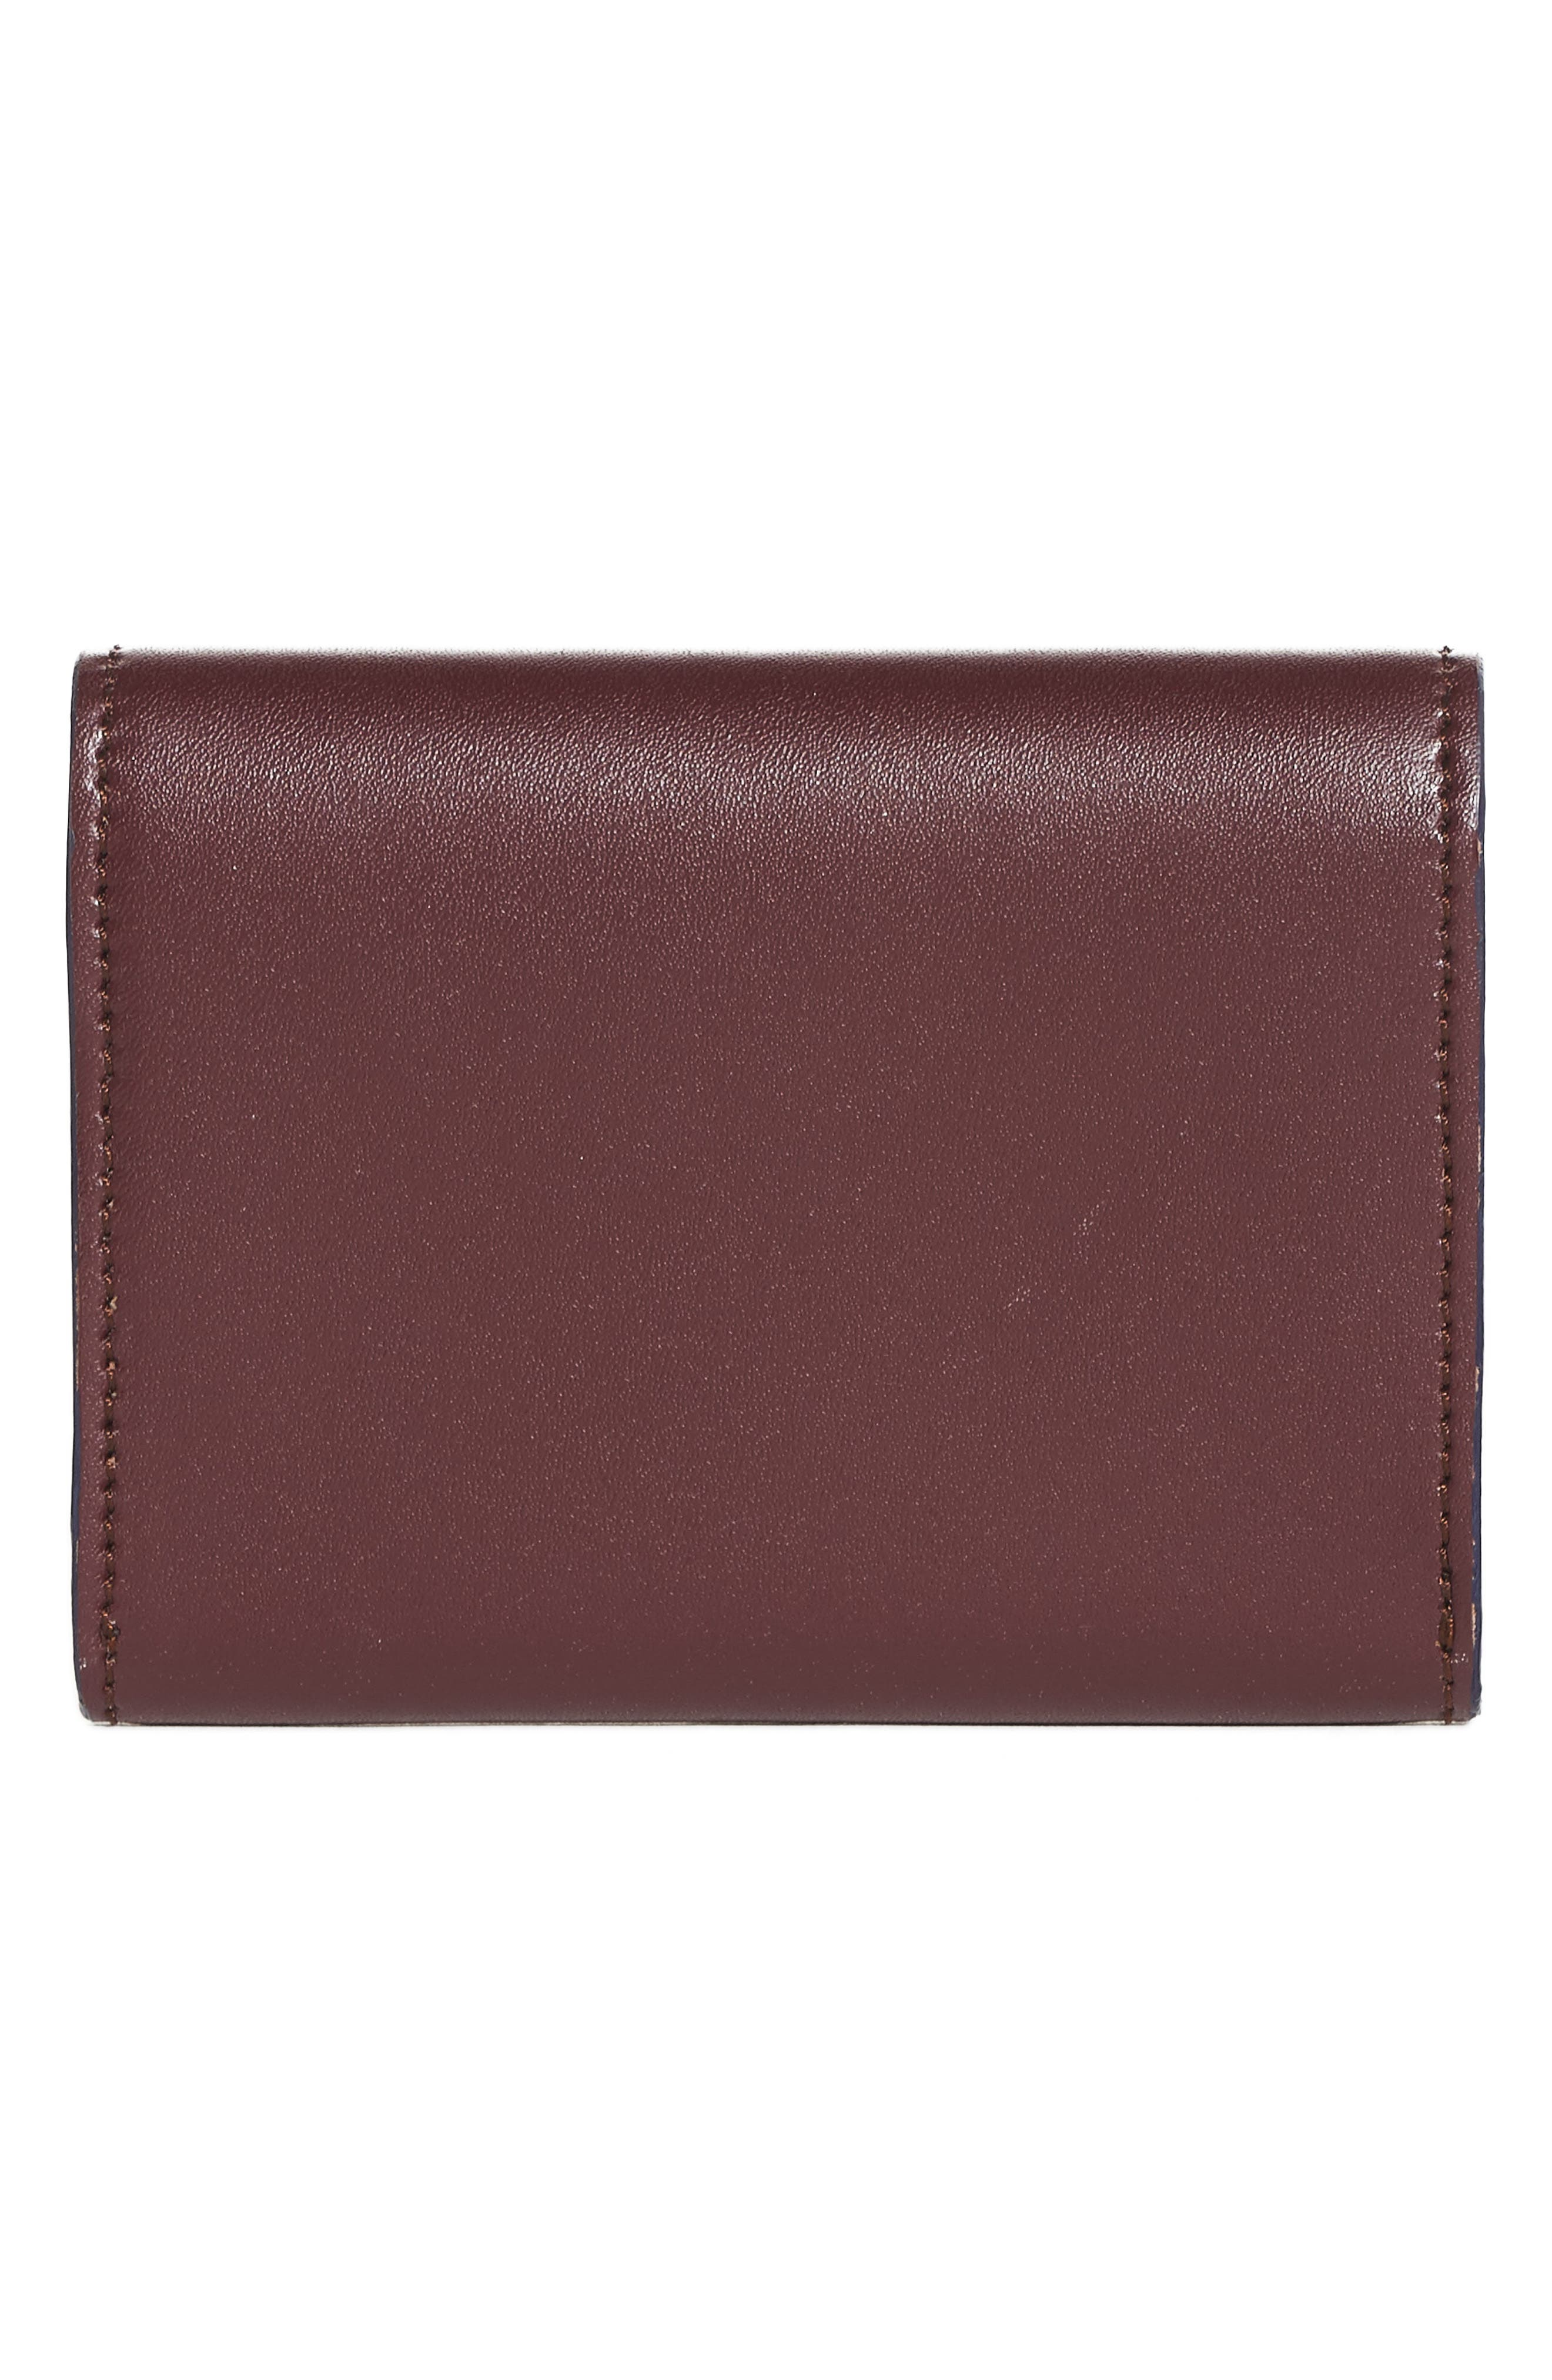 Leather Card Case,                             Alternate thumbnail 3, color,                             607